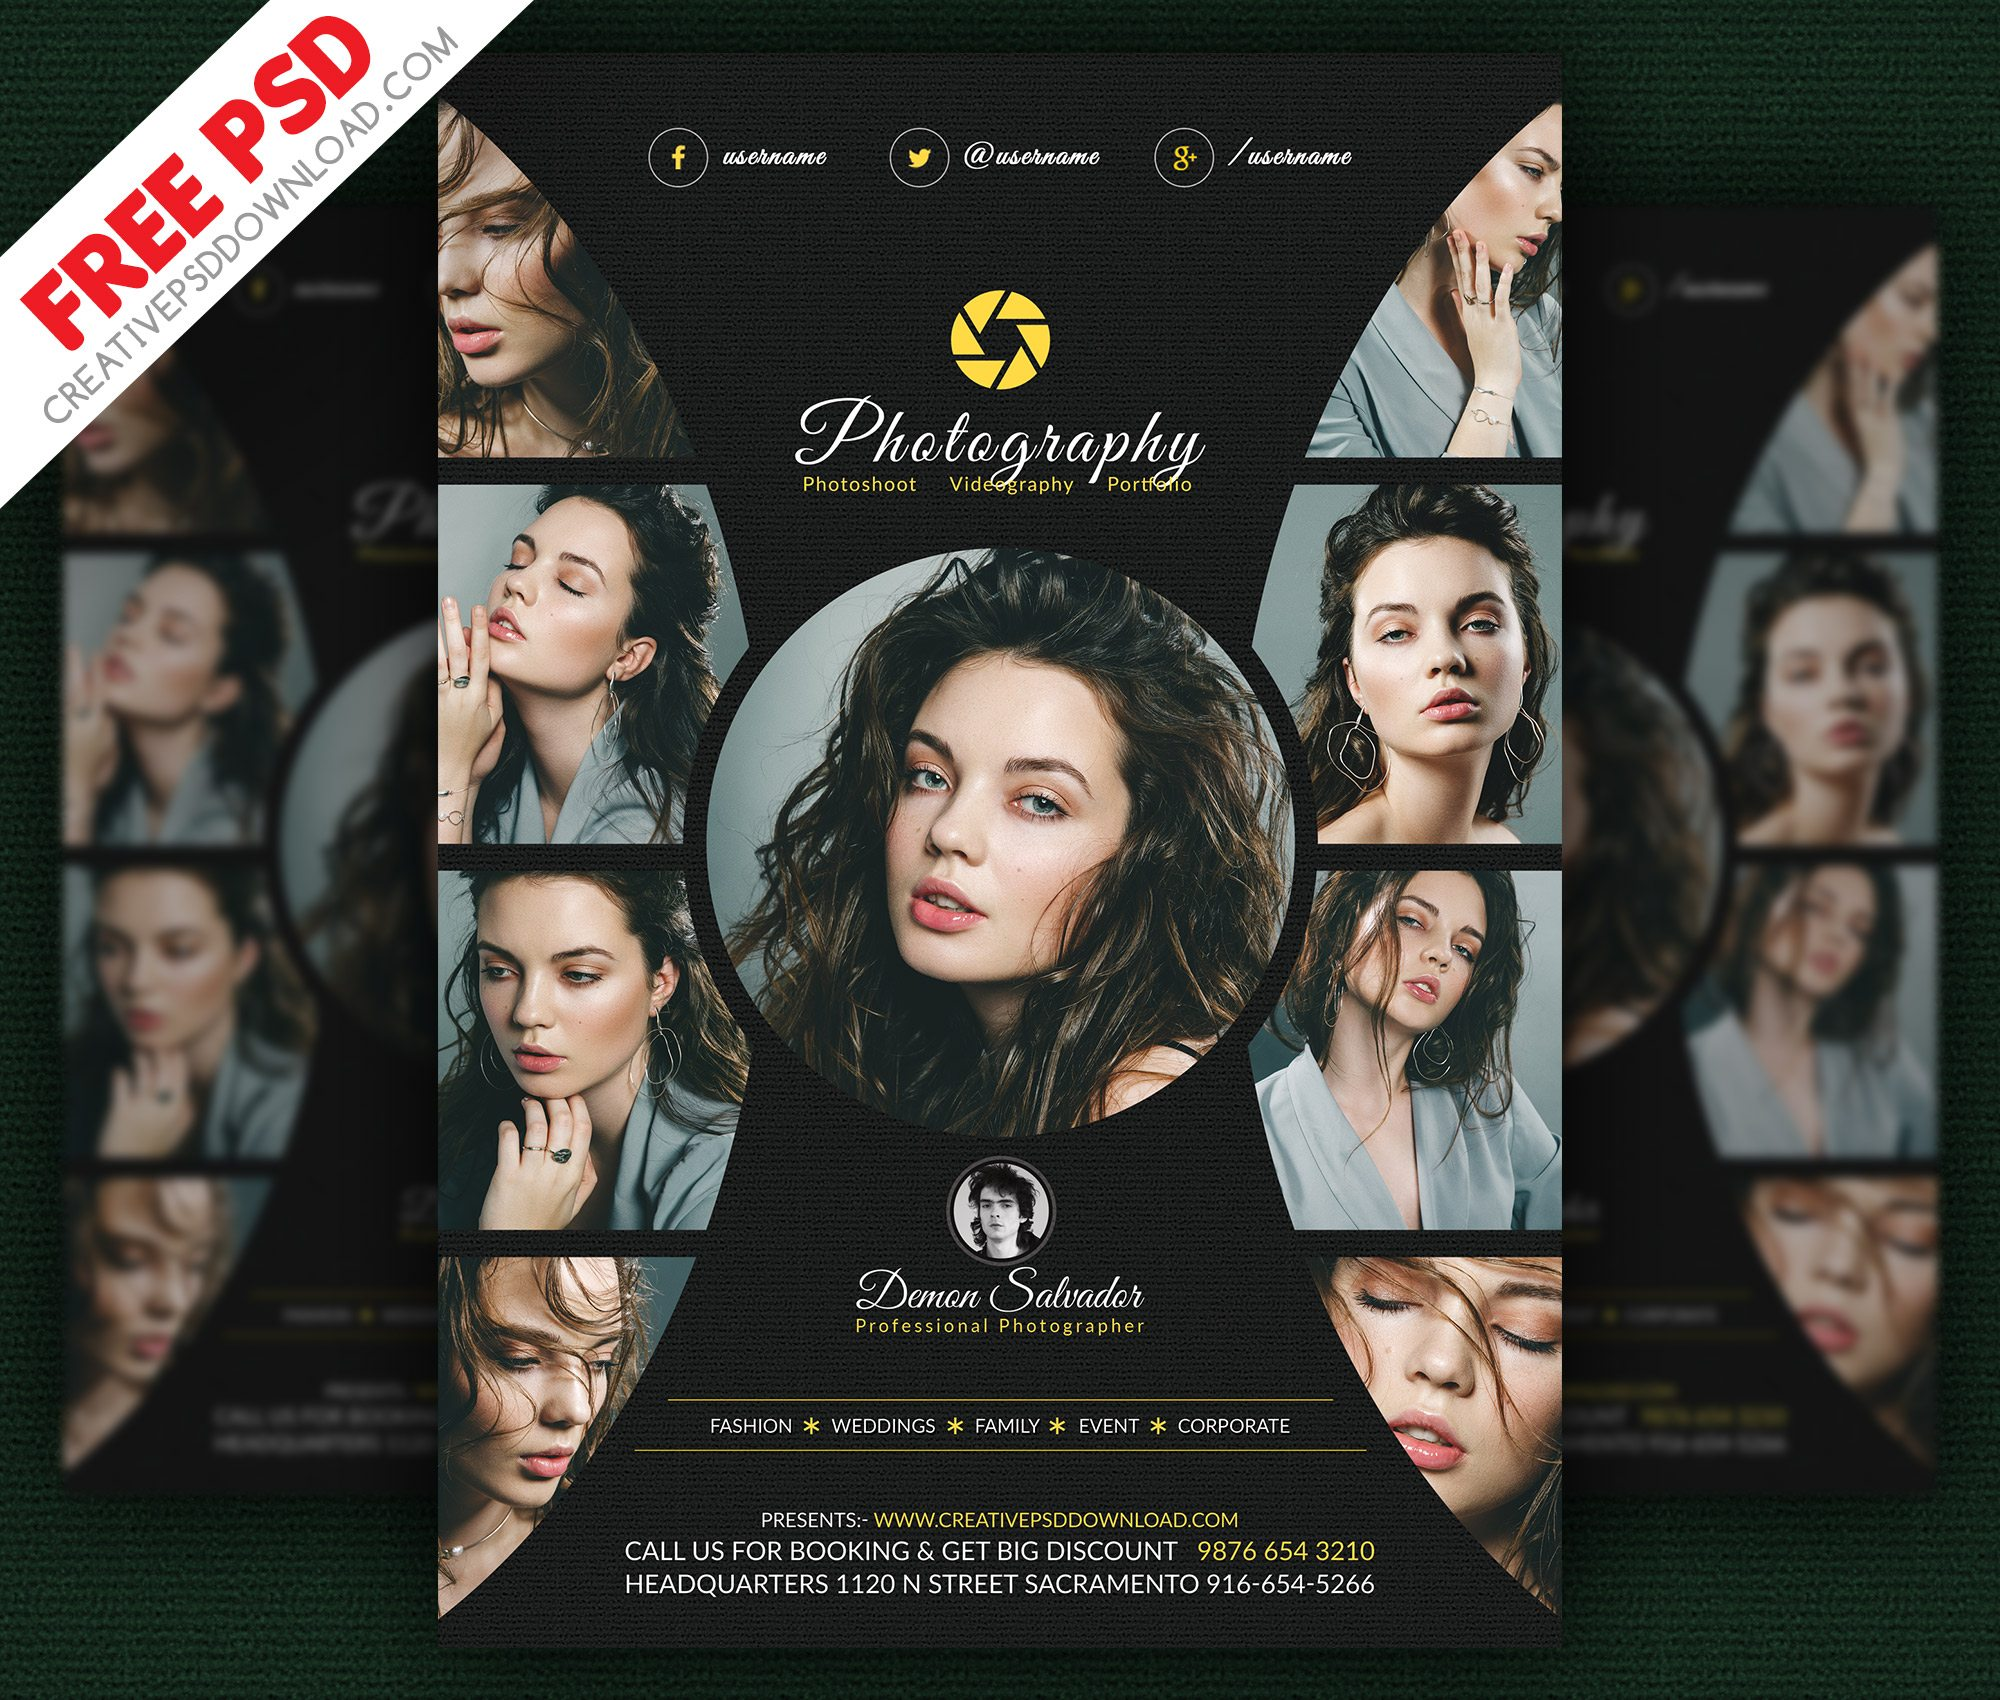 Photography Flyer Free PSD Template